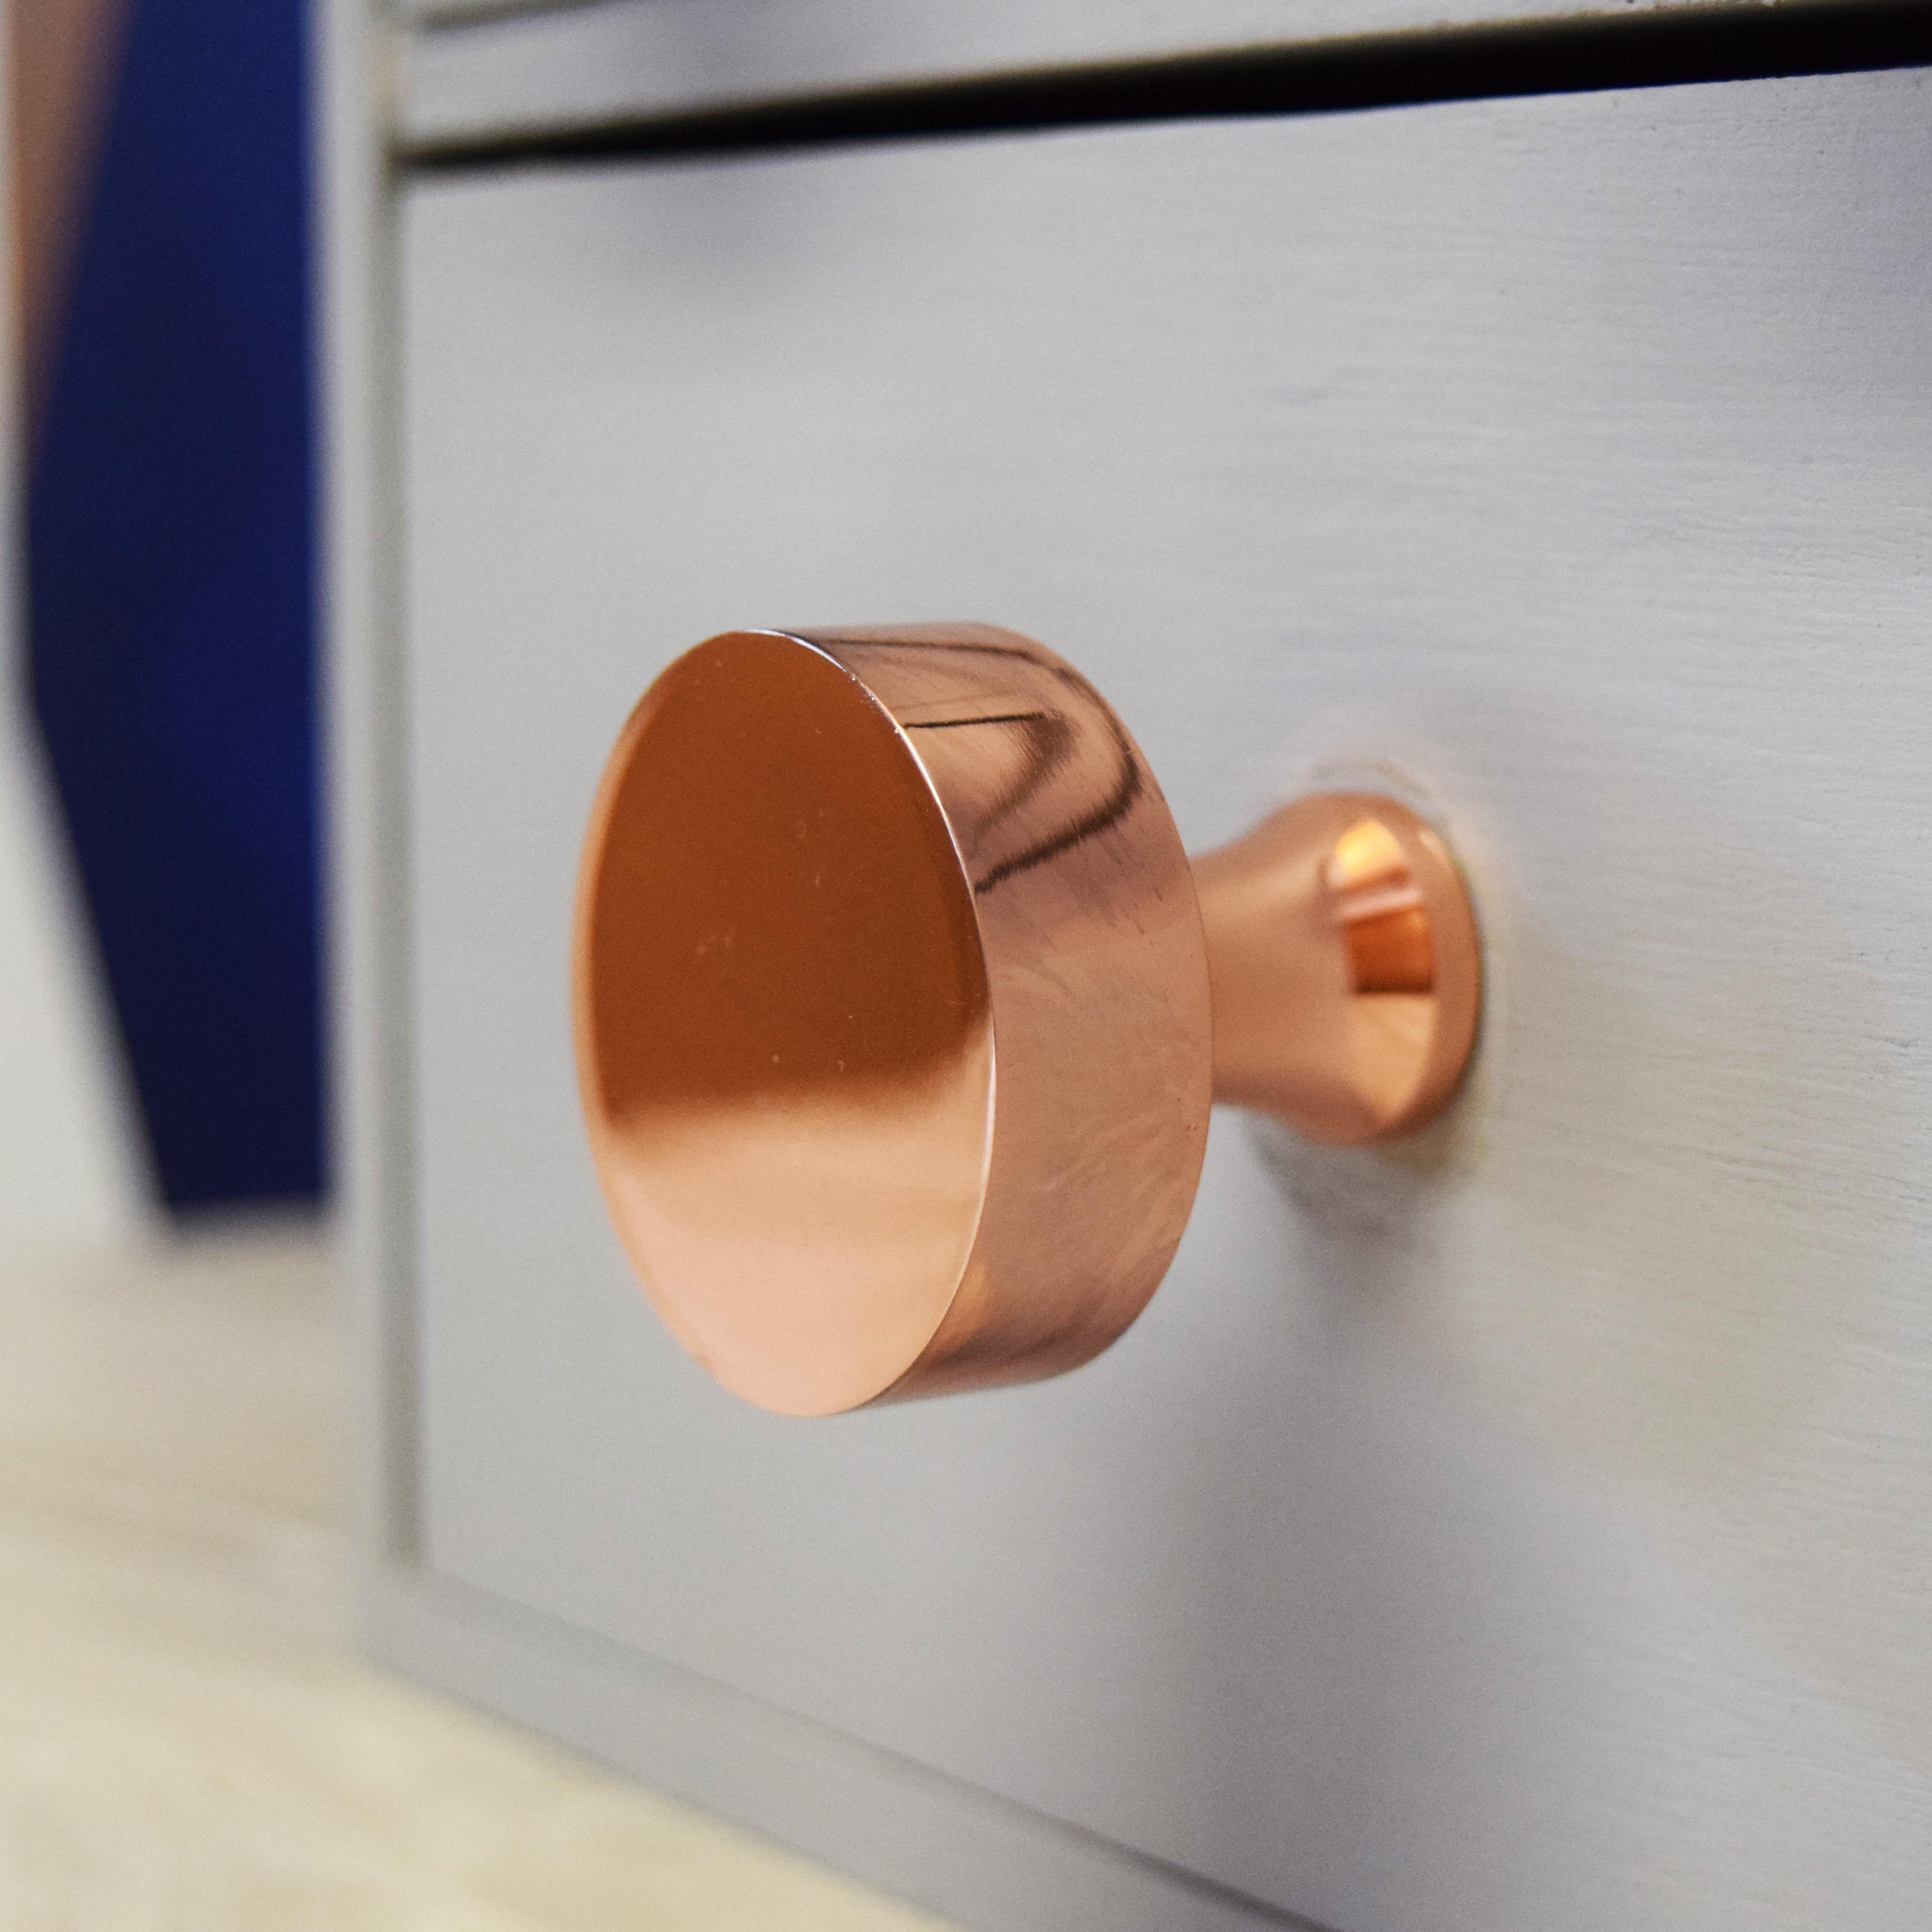 fun handles beautiful with copper hardware gallery plan fantastic cupboard cabinet handle probably door of knob design idea knobs kitchen